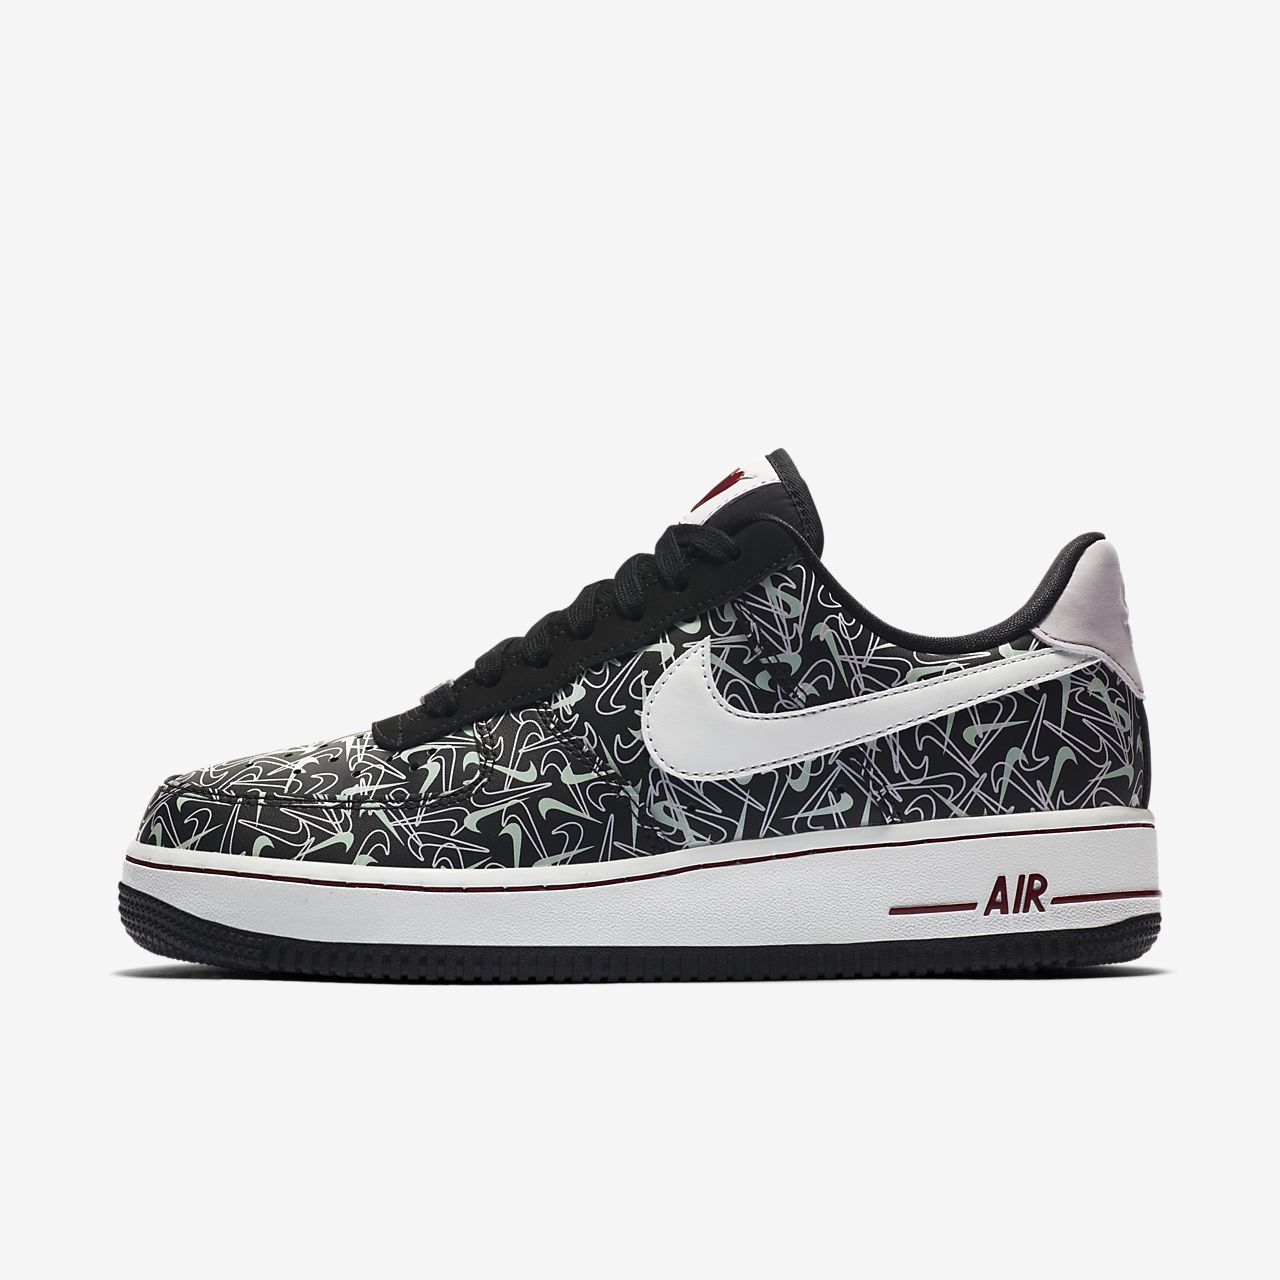 Nike Air Force 1 '07 Valentine's Day Damesschoen